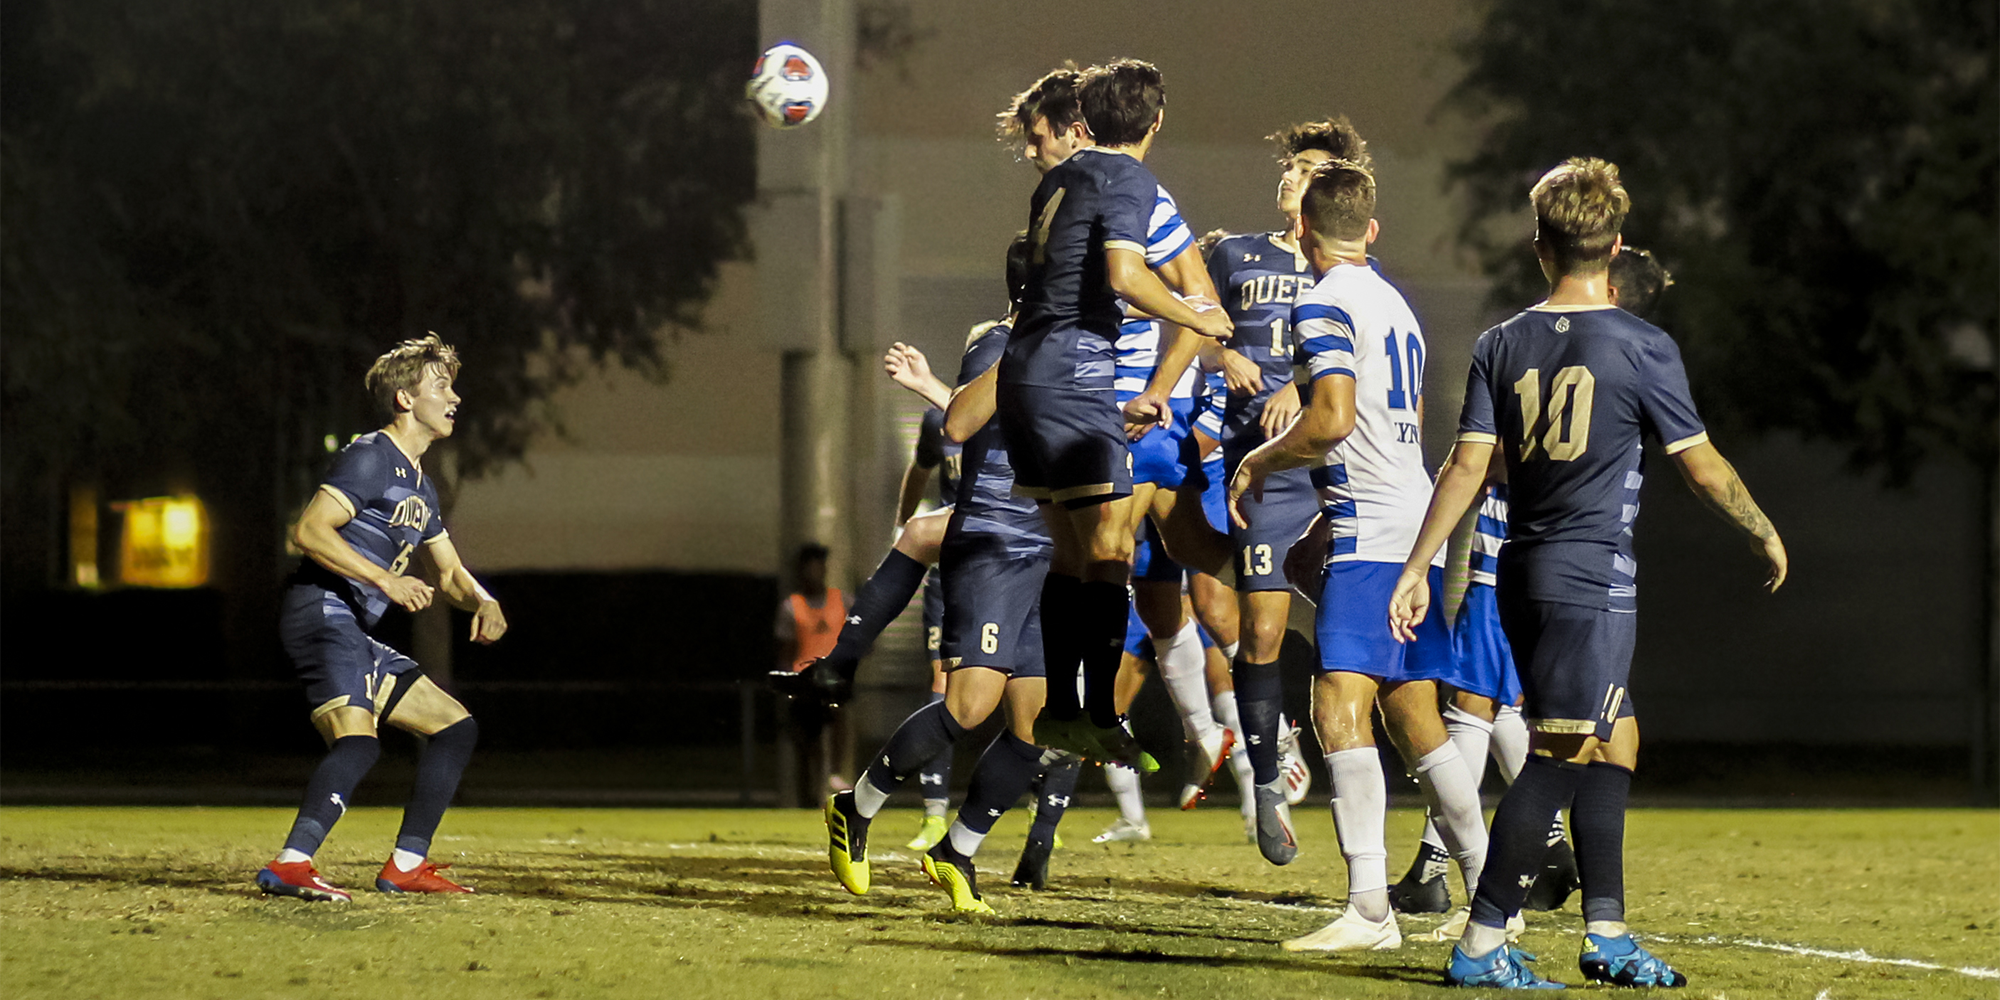 Sweet Victory! Men's Soccer Advances to Round of 16 with 1-0 Win over Queens